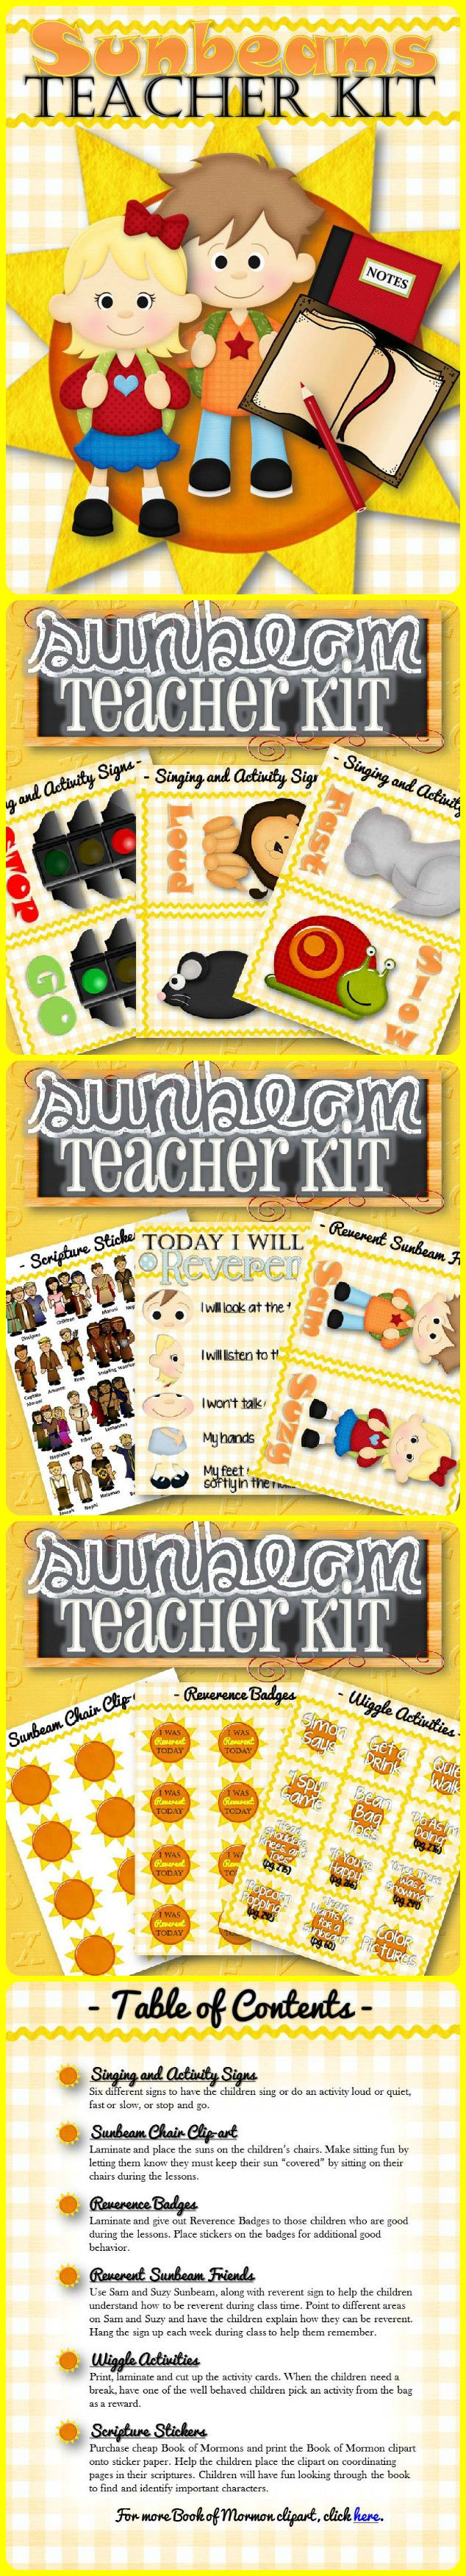 The perfect kit to make teaching little LDS Sunbeams and young children simple and fun! The activities, rewards, teaching ideas, and games will help make the transition from Nursery to Primary a little easier and more fun for both the child and the teacher. Items include Singing and Activity Signs, Sunbeam Chair Clip-art, Reverence Badges, Reverent Sunbeam Friends, Today I Will be Reverent Sign, Wiggle Activities and Scripture Stickers! FREEBIE INCLUDED